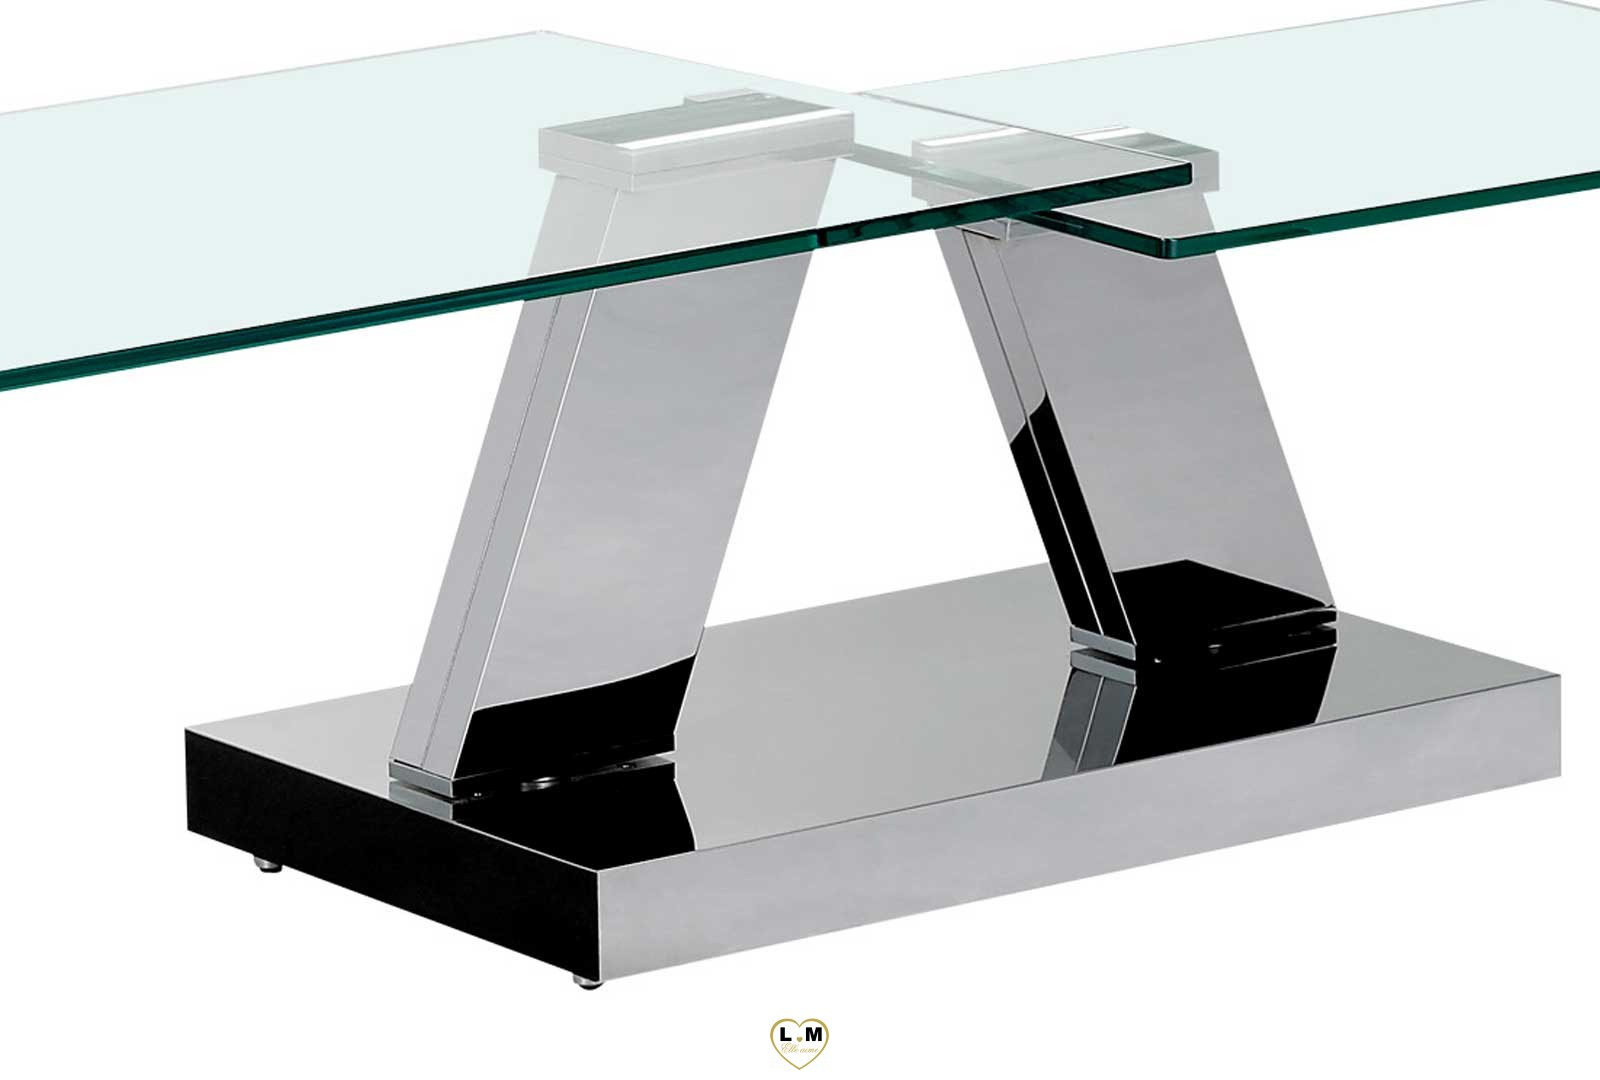 bastille table basse chrome verre articulee lignemeuble com. Black Bedroom Furniture Sets. Home Design Ideas